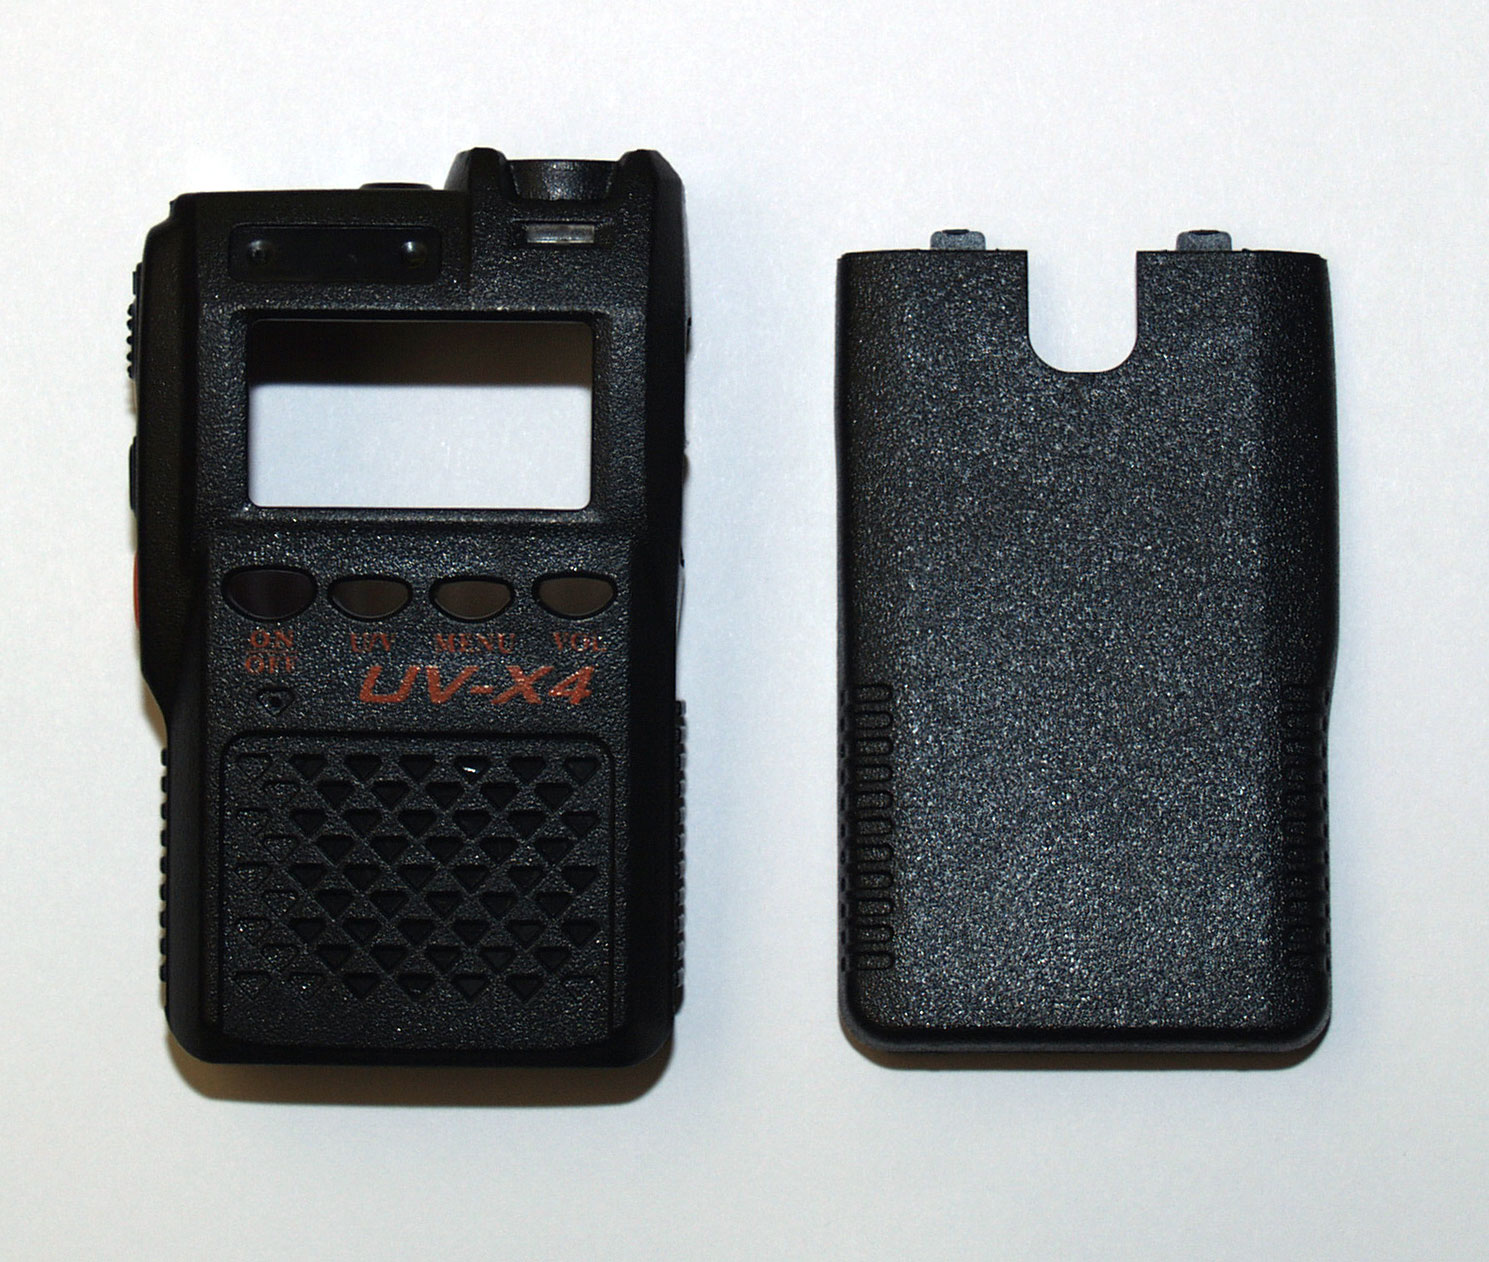 Black Outer Housing for Vero Telecom UV-X4 transceiver